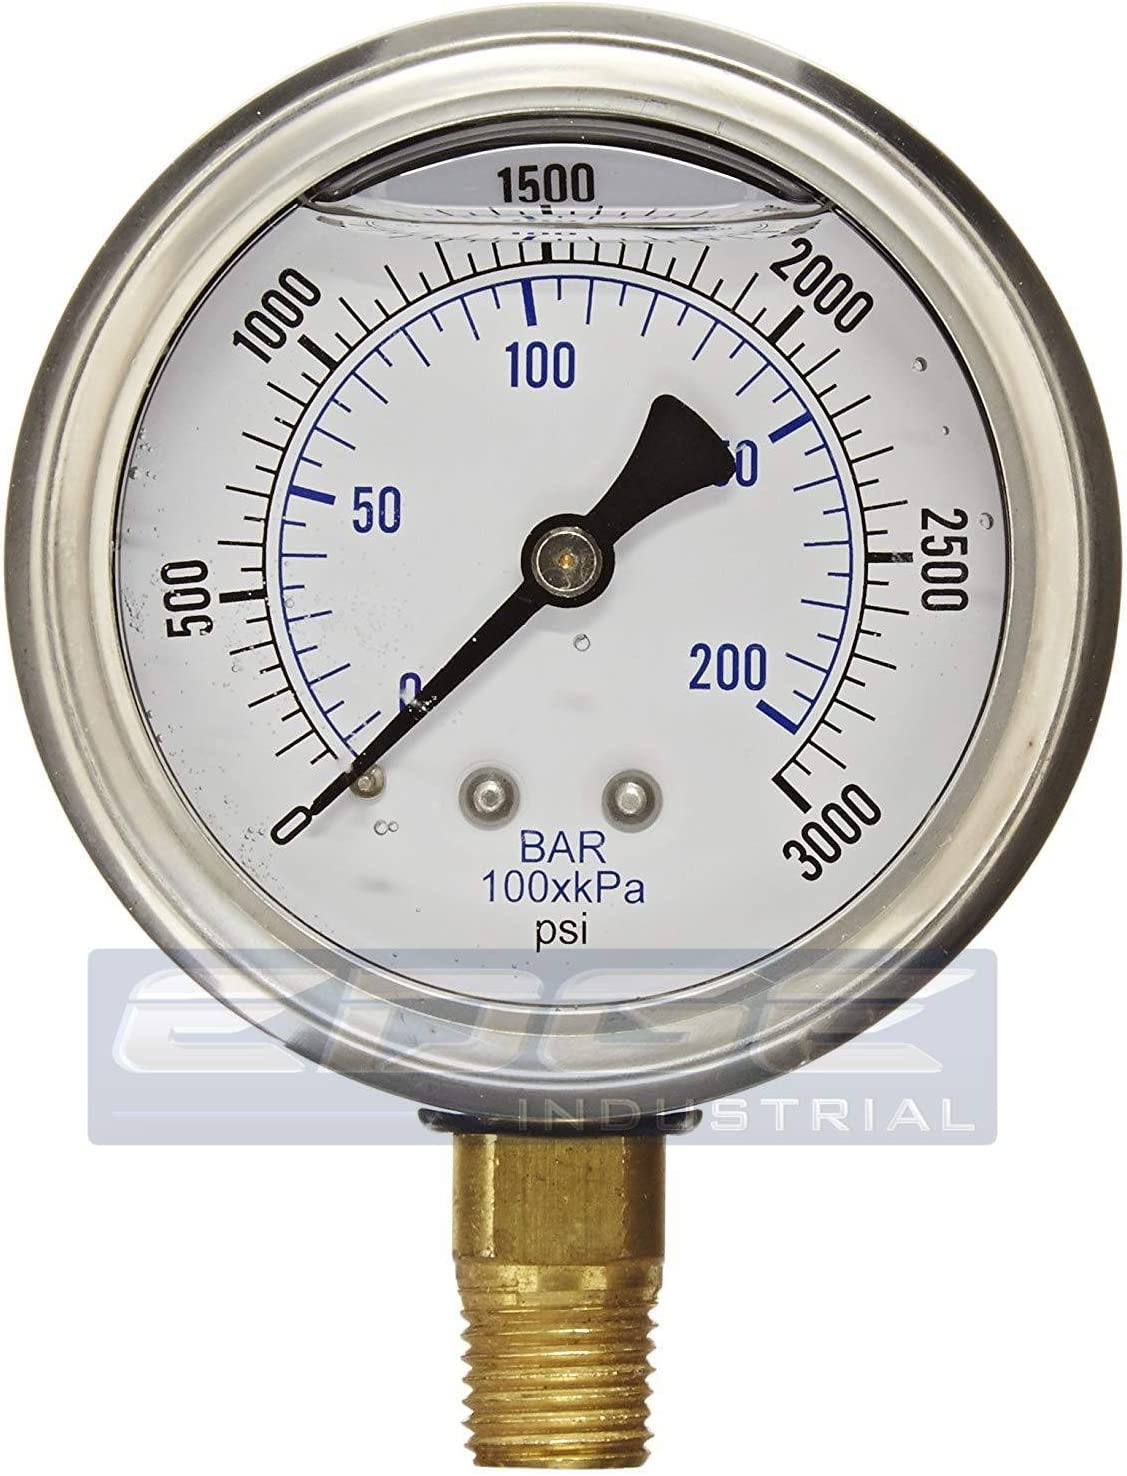 "NEW STAINLESS STEEL LIQUID FILLED PRESSURE GAUGE WOG WATER OIL GAS 0 to 3000 PSI LOWER MOUNT 0-3000 PSI 1/4"" NPT 2.5"" FACE DIAL FOR COMPRESSOR HYDRAULIC AIR TANK"